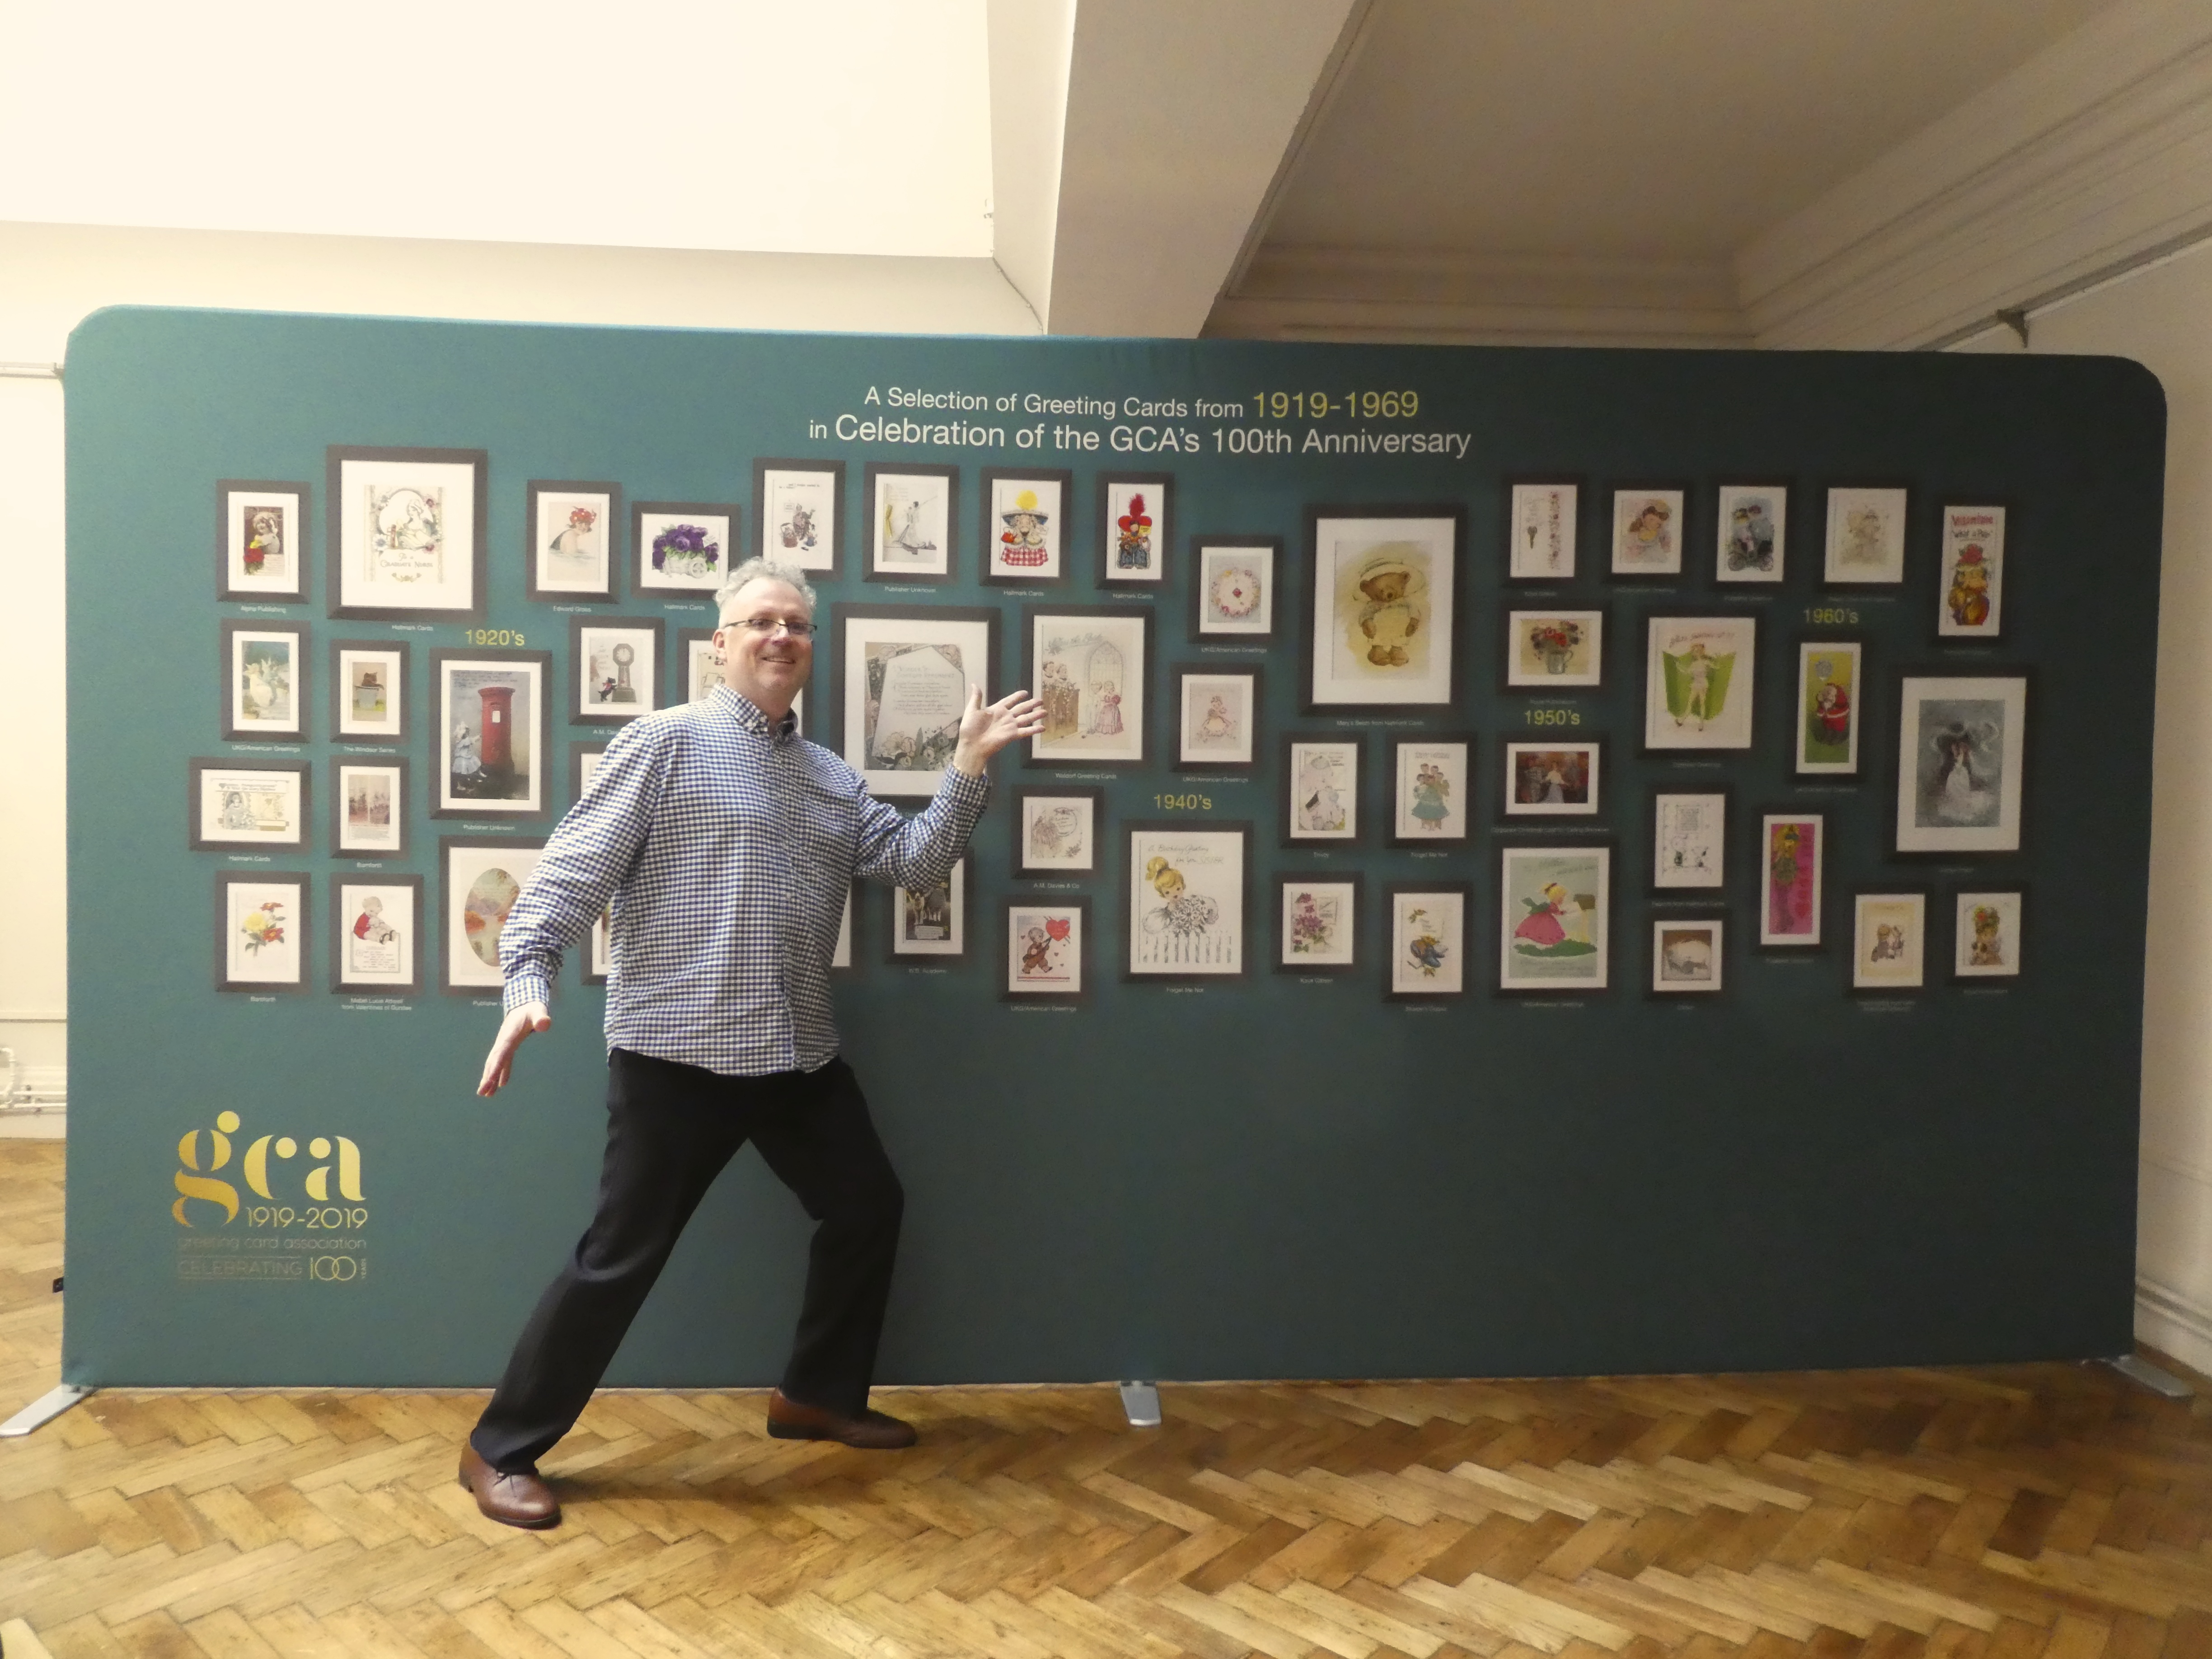 Above: Geoff Sanderson, curator of the exhibition in front of one of the panels.